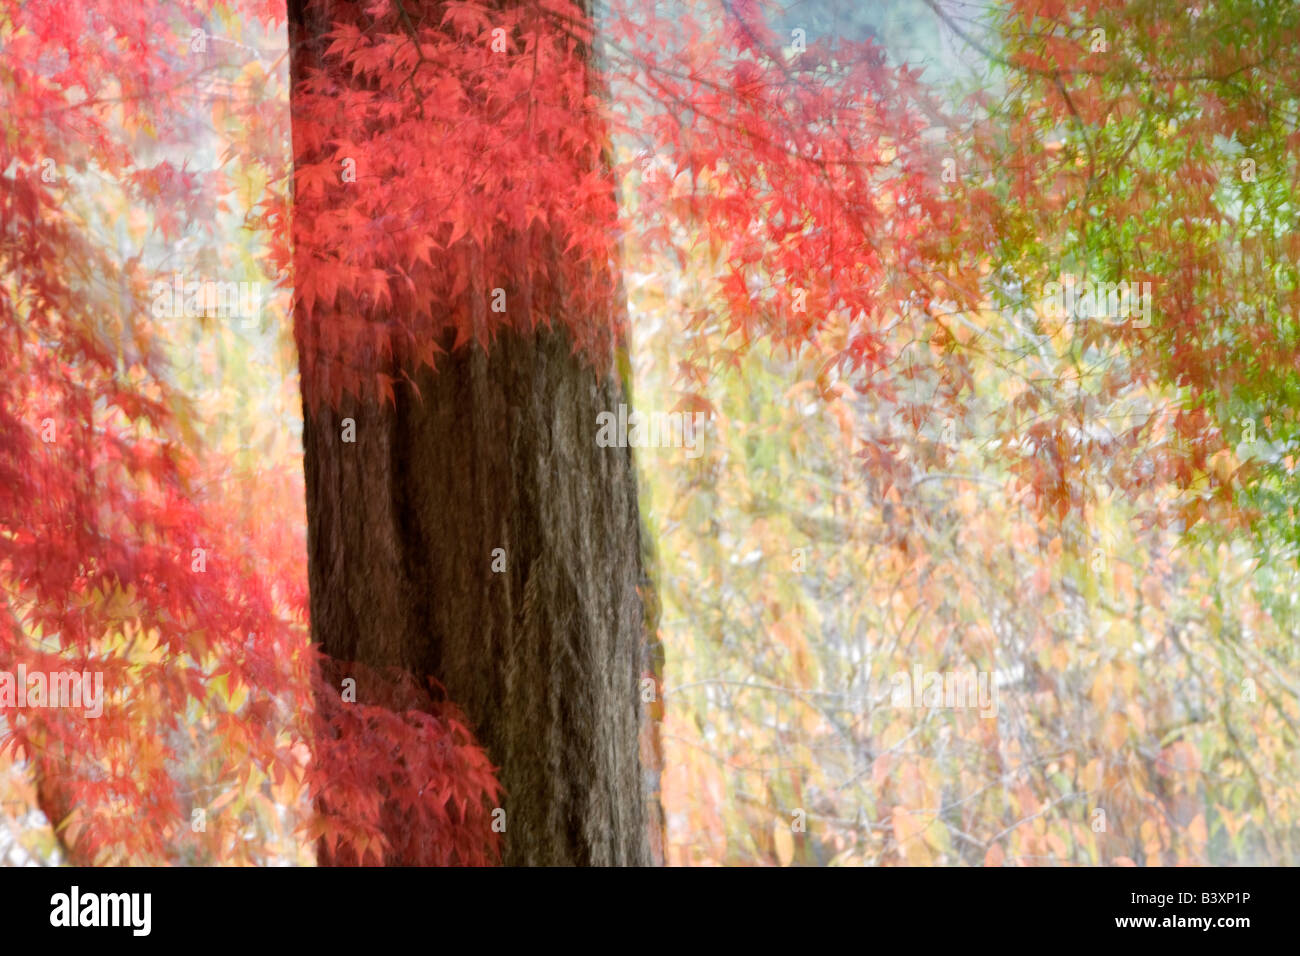 Fall colored japanese maples Crystal Springs Rhododendron Gardens Portland Oregon - Stock Image